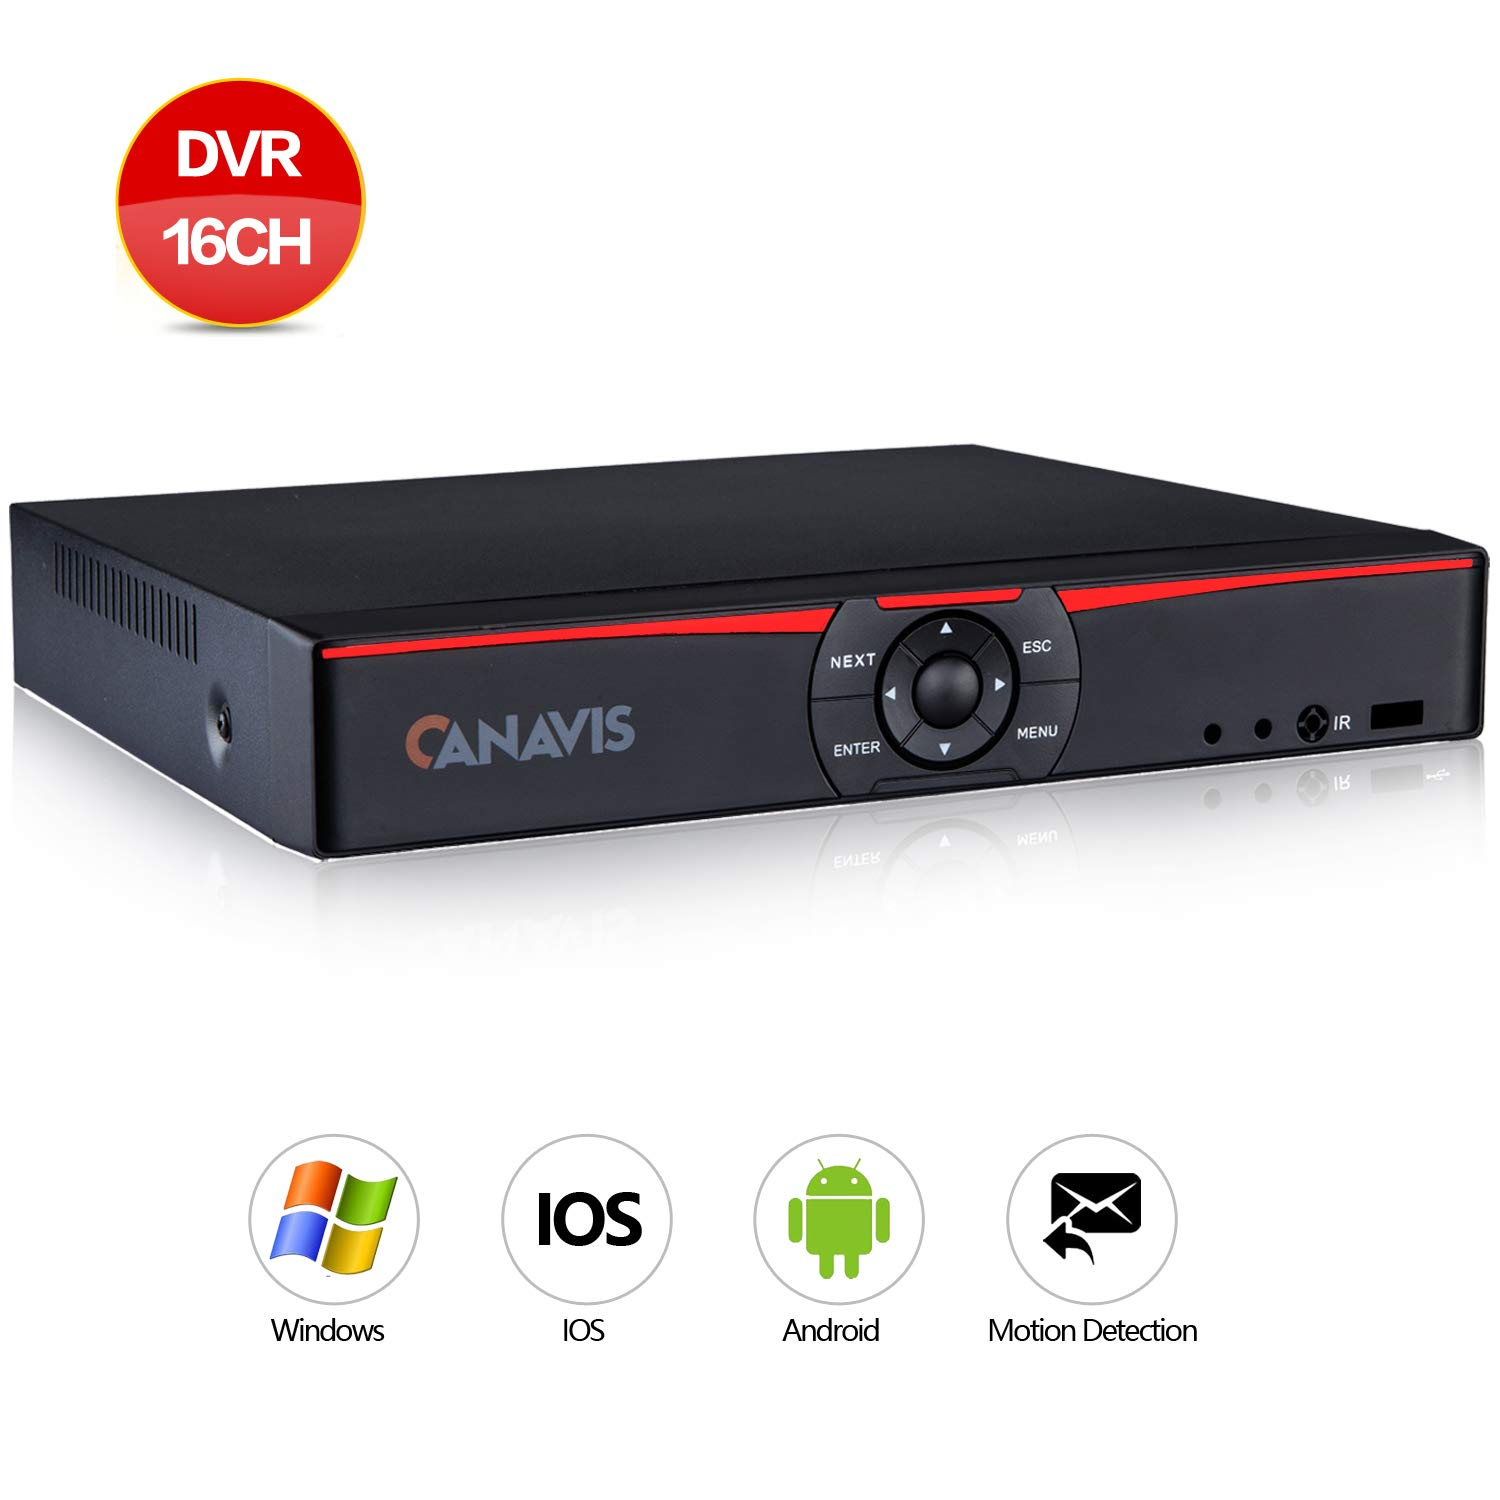 CANAVIS 16Channel 1080N Hybrid 5-in-1 DVR H.264 CCTV Security Surveillance DVR Record System NO Hard Disk (Full 720P,QR Code Scan Quick Access, Smartphone& PC Easy Remote Access) by CANAVIS